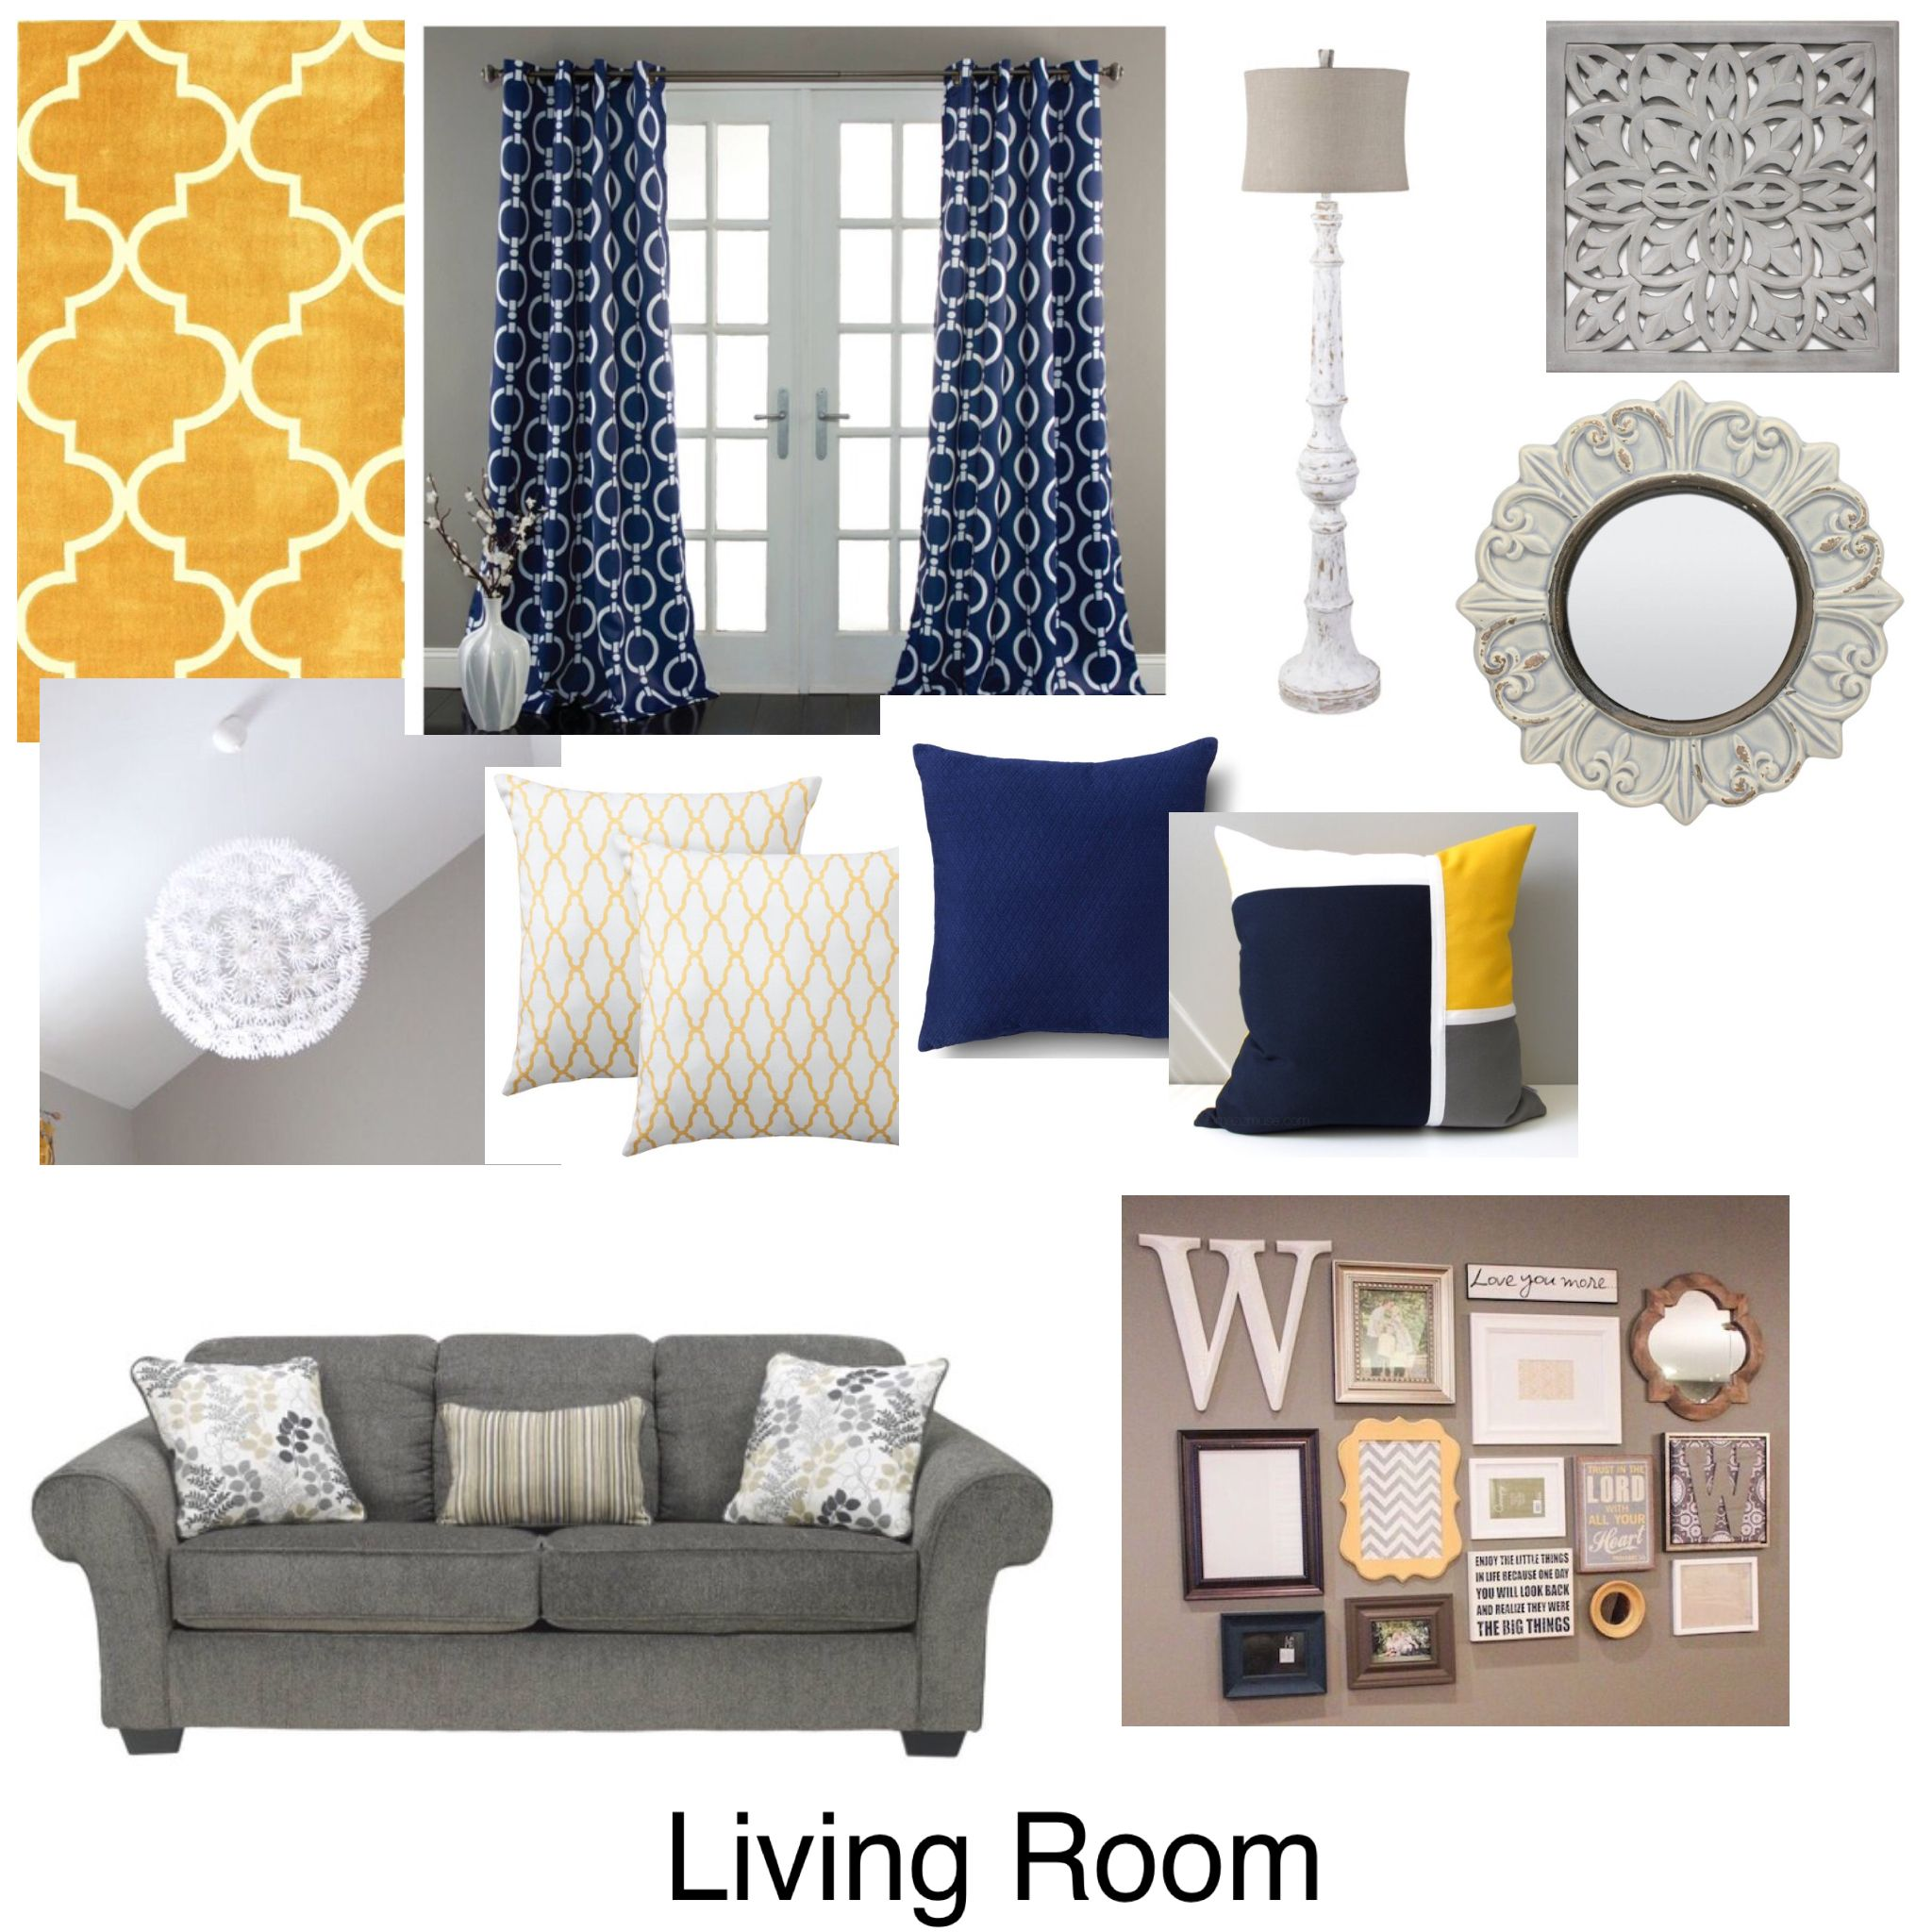 Home Decor On A Budget Inexpensive Ways To Decorate Your Home Grey And Yellow Living Room Living Room Grey Yellow Decor Living Room #yellow #grey #and #white #living #room #ideas